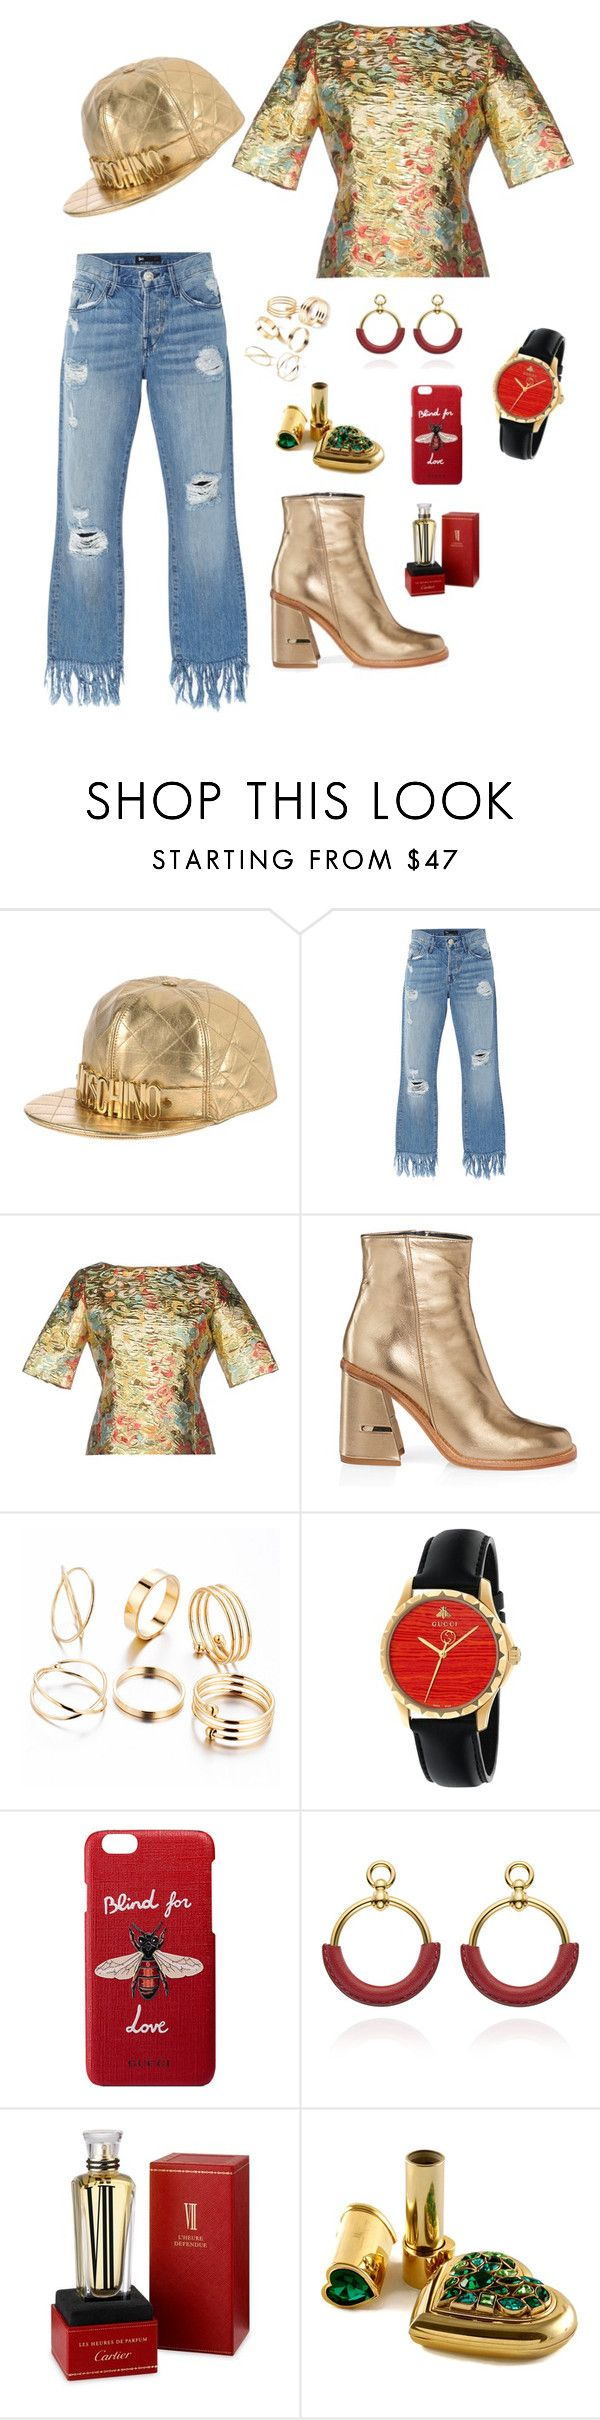 """""""Mmmm!"""" by redbone1961114 on Polyvore featuring Moschino, 3x1, TIBI, Gucci and Cartier"""